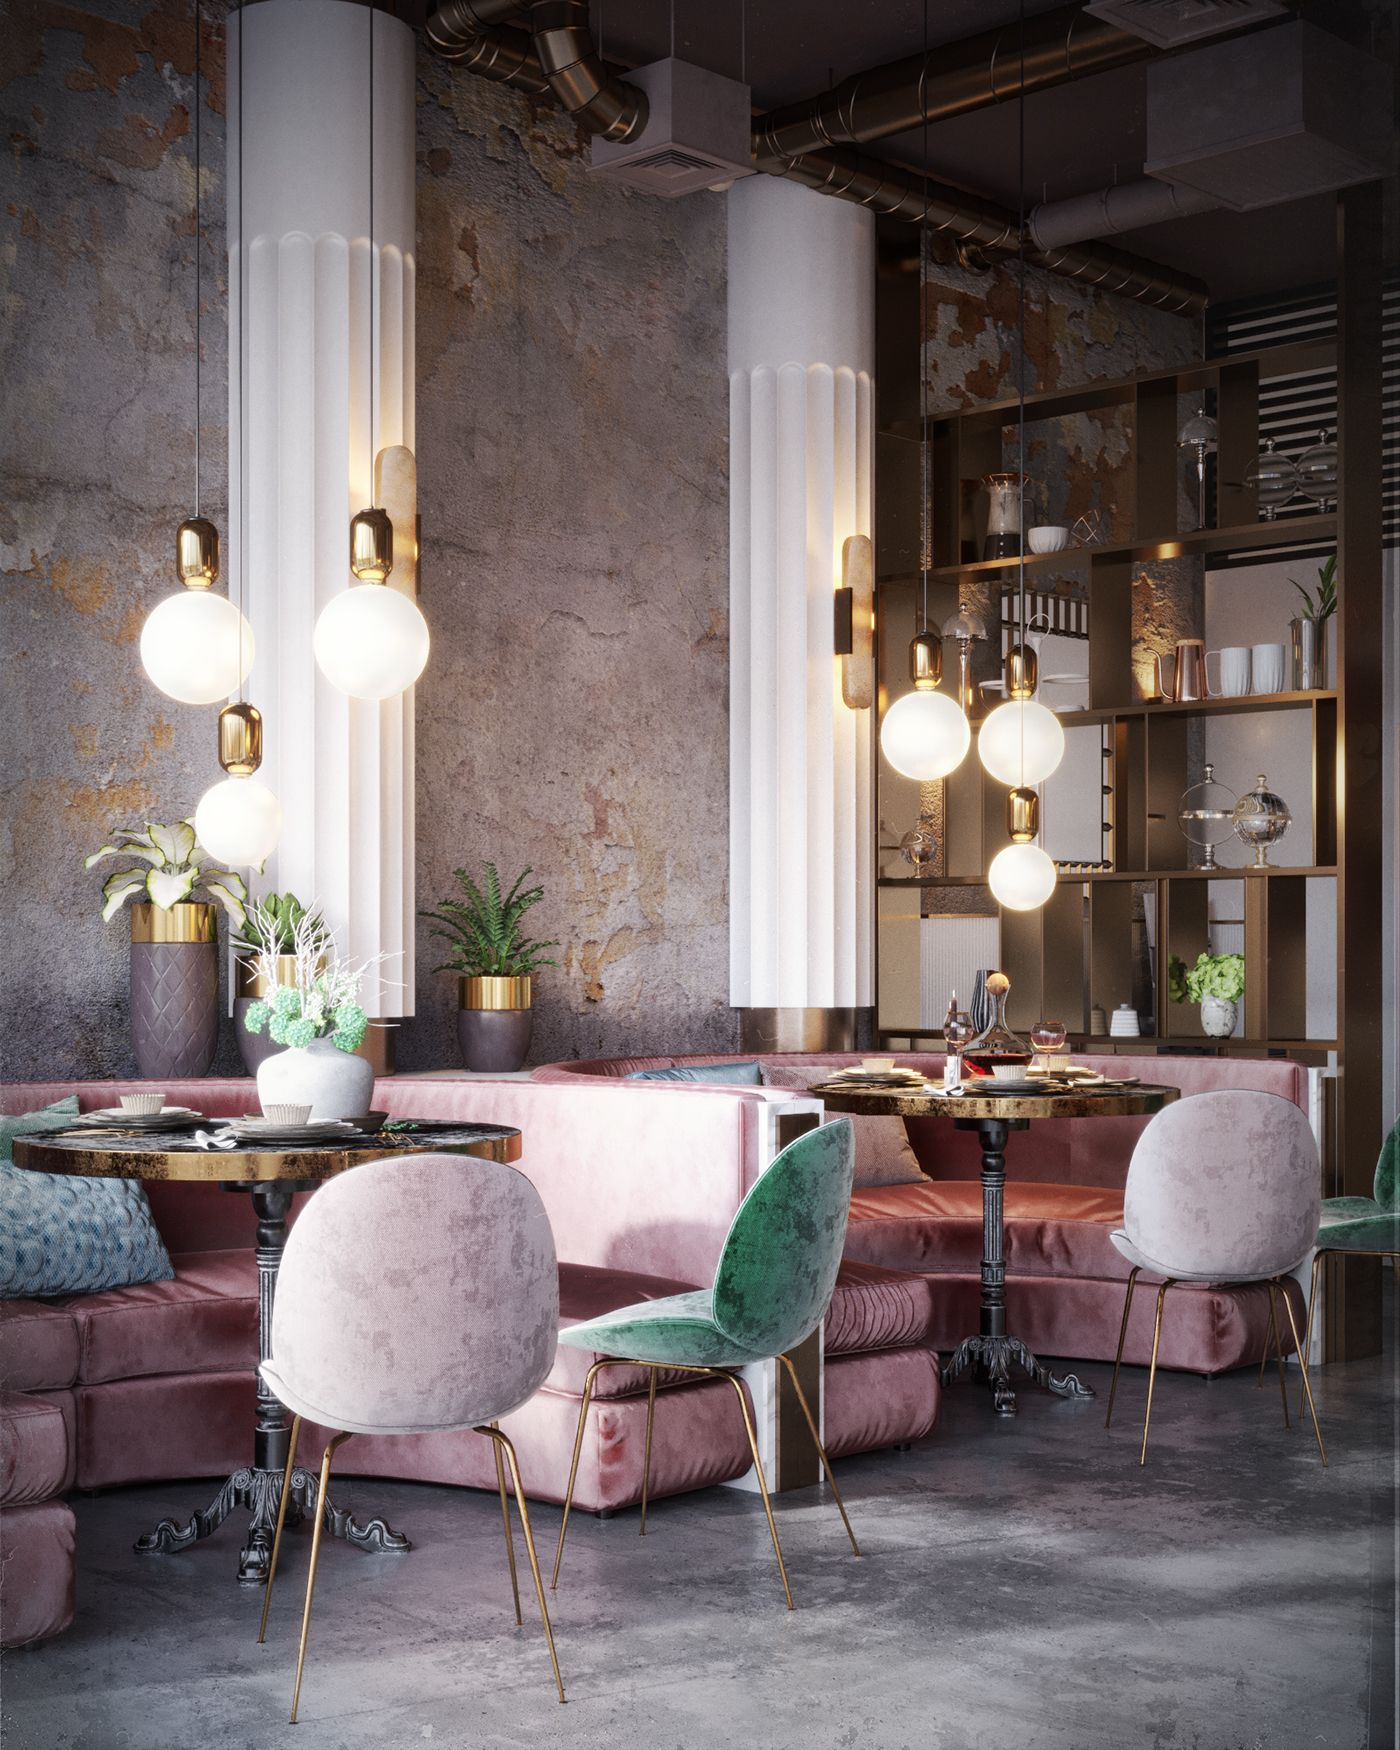 Horeca Meubilair Overijssel Wanderlusting Contemporary Restaurant Design So Pink Pretty